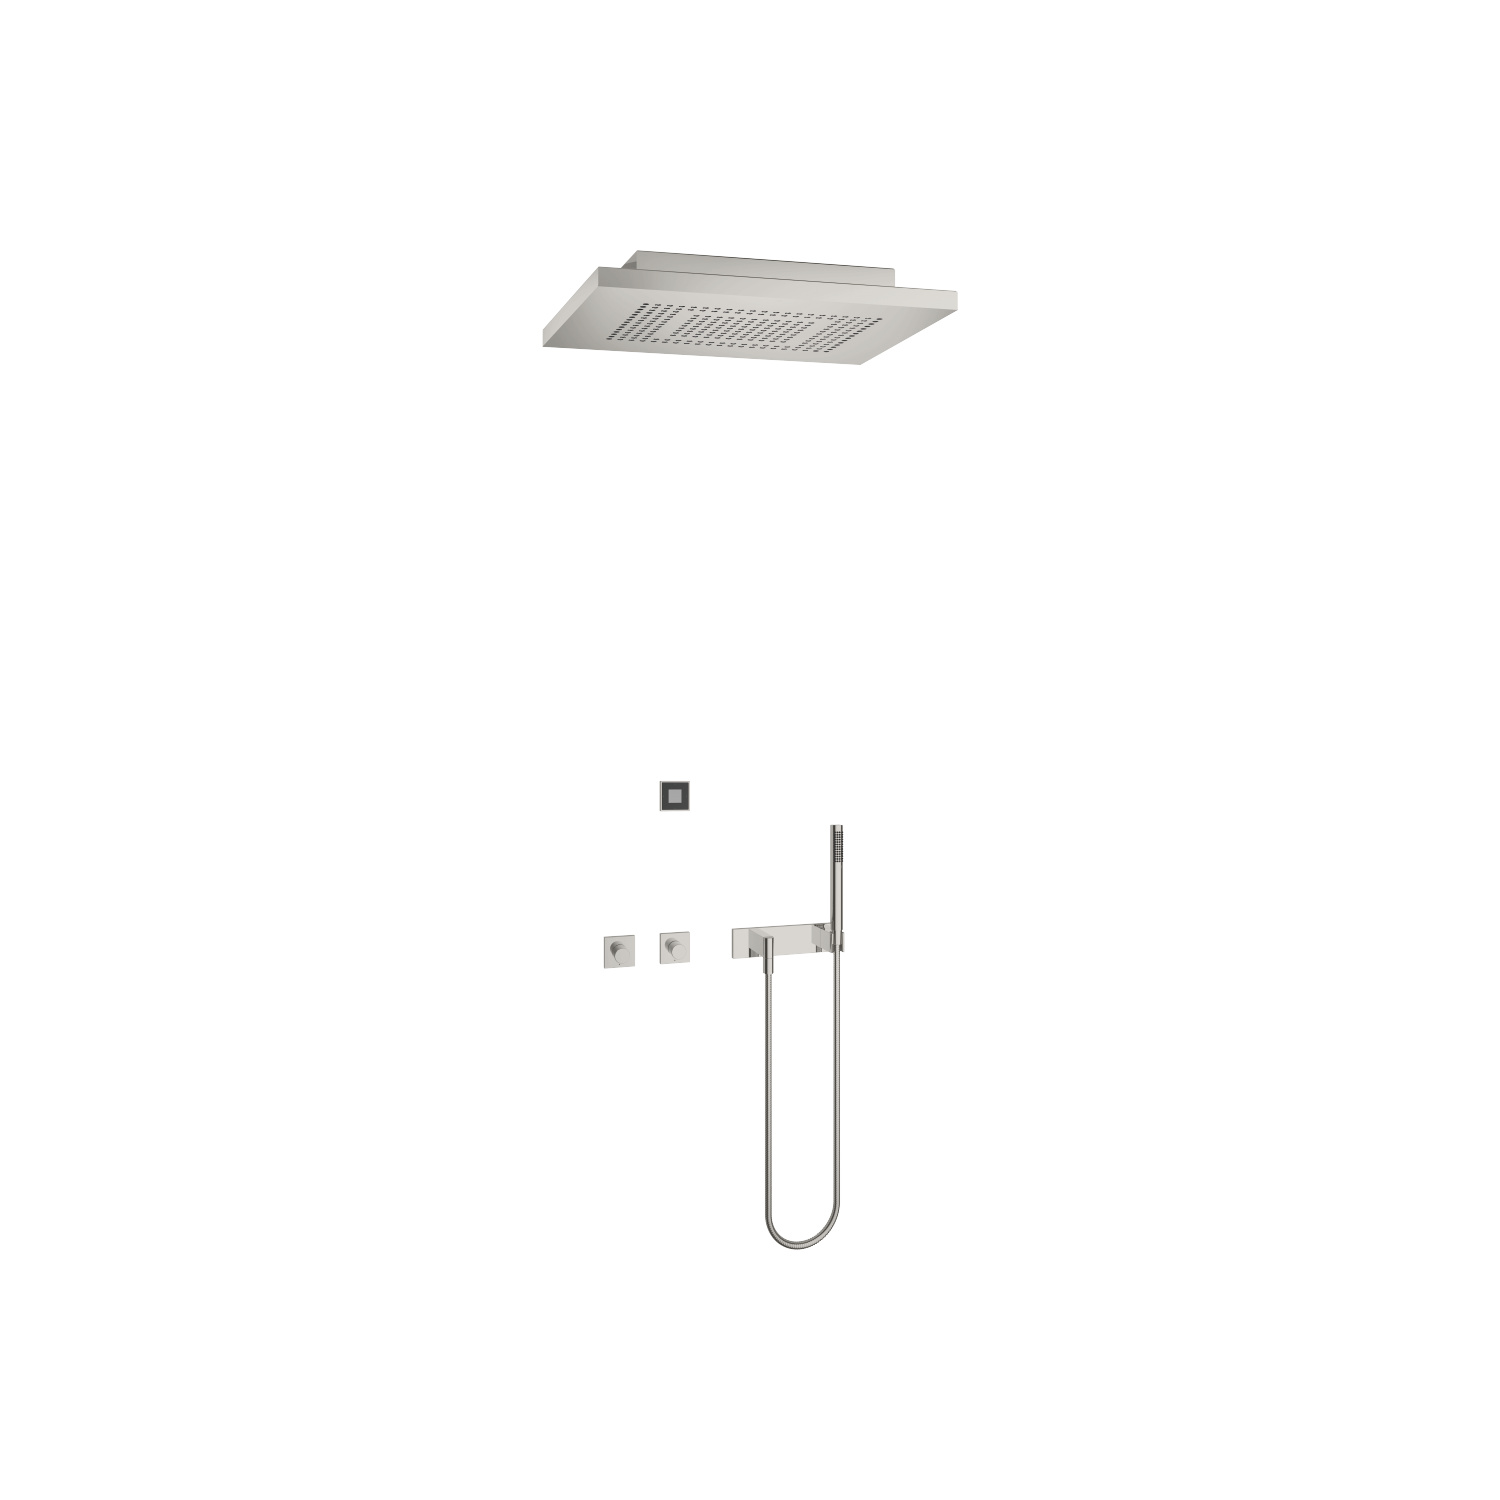 eUNIT SHOWERᴬᵀᵀ Smart Rain Shower - Brushed stainless steel / platinum matt